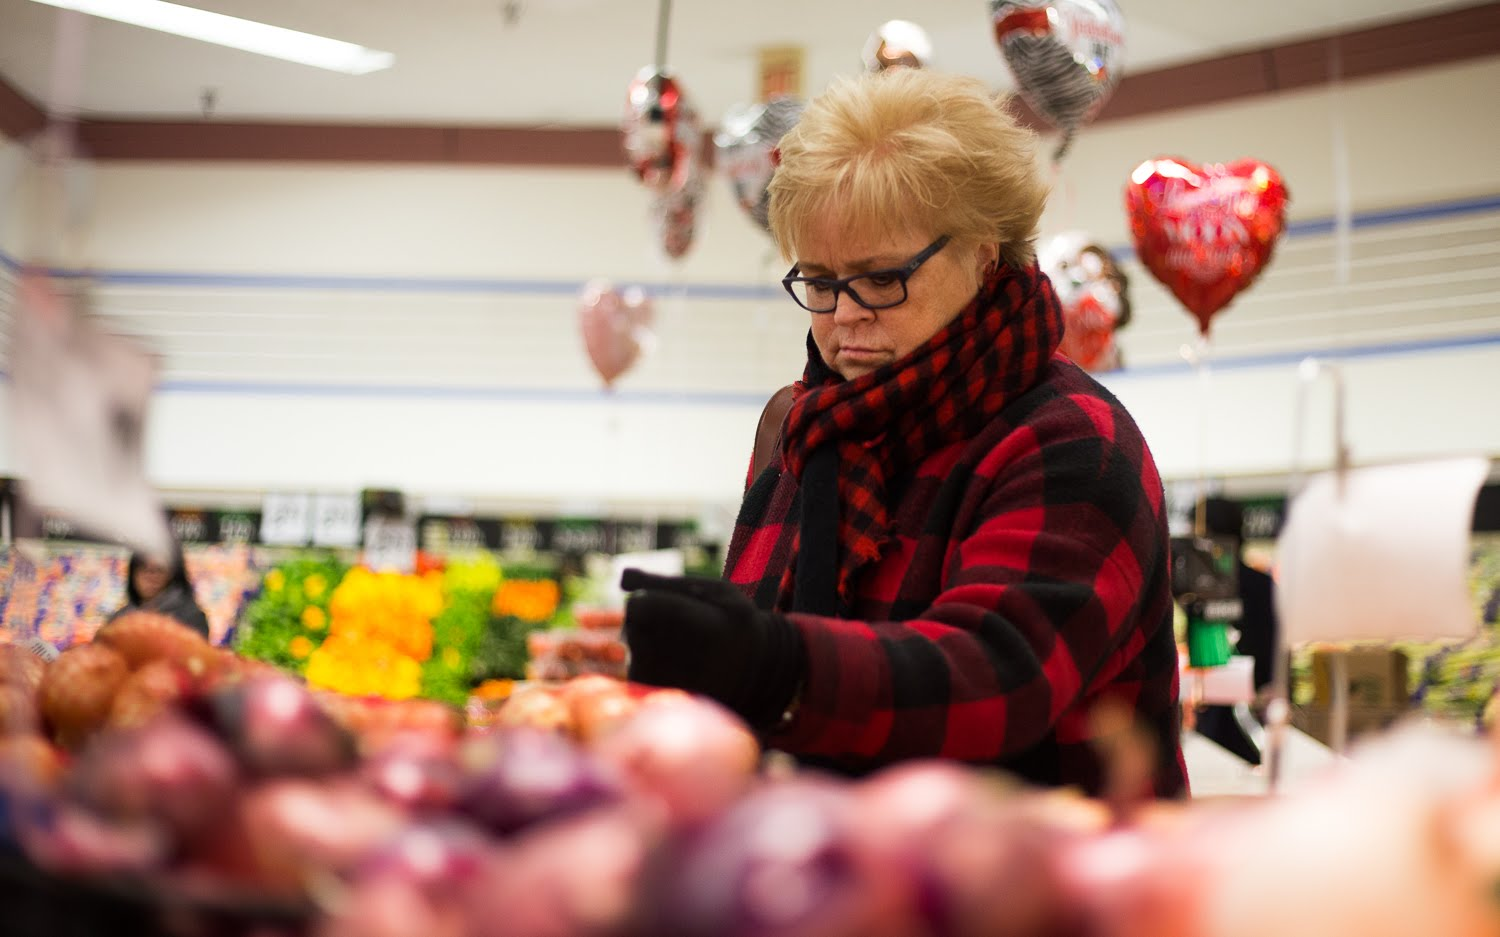 Sandy Kadash looks at a bag of onions in a Washington SHOP 'n SAVE as she buys groceries for an elderly friend. (Photo by John Hamilton/PublicSource)